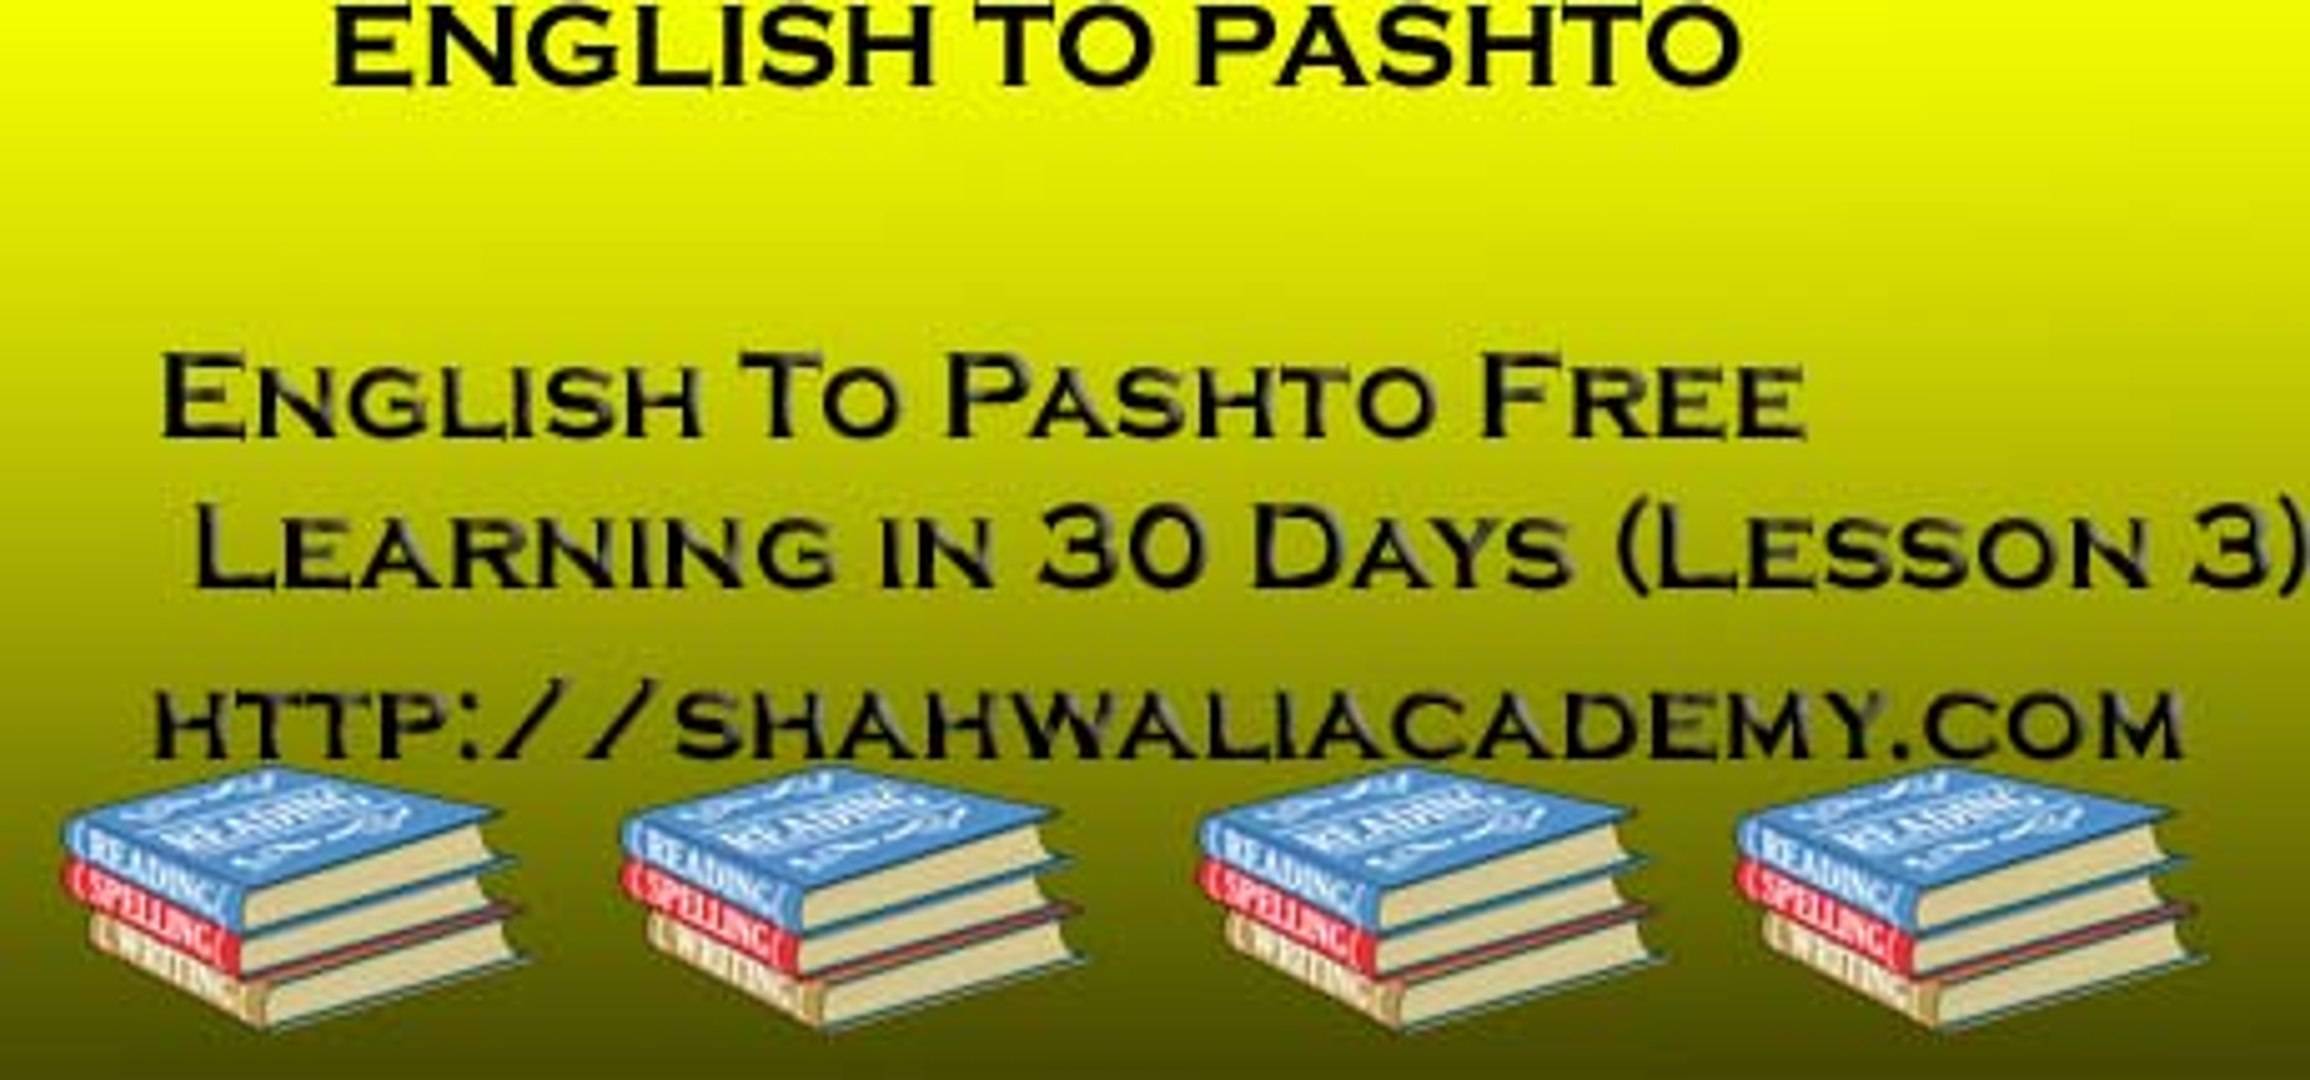 English To Pashto Free Learning in 30 Days (Lesson 3)